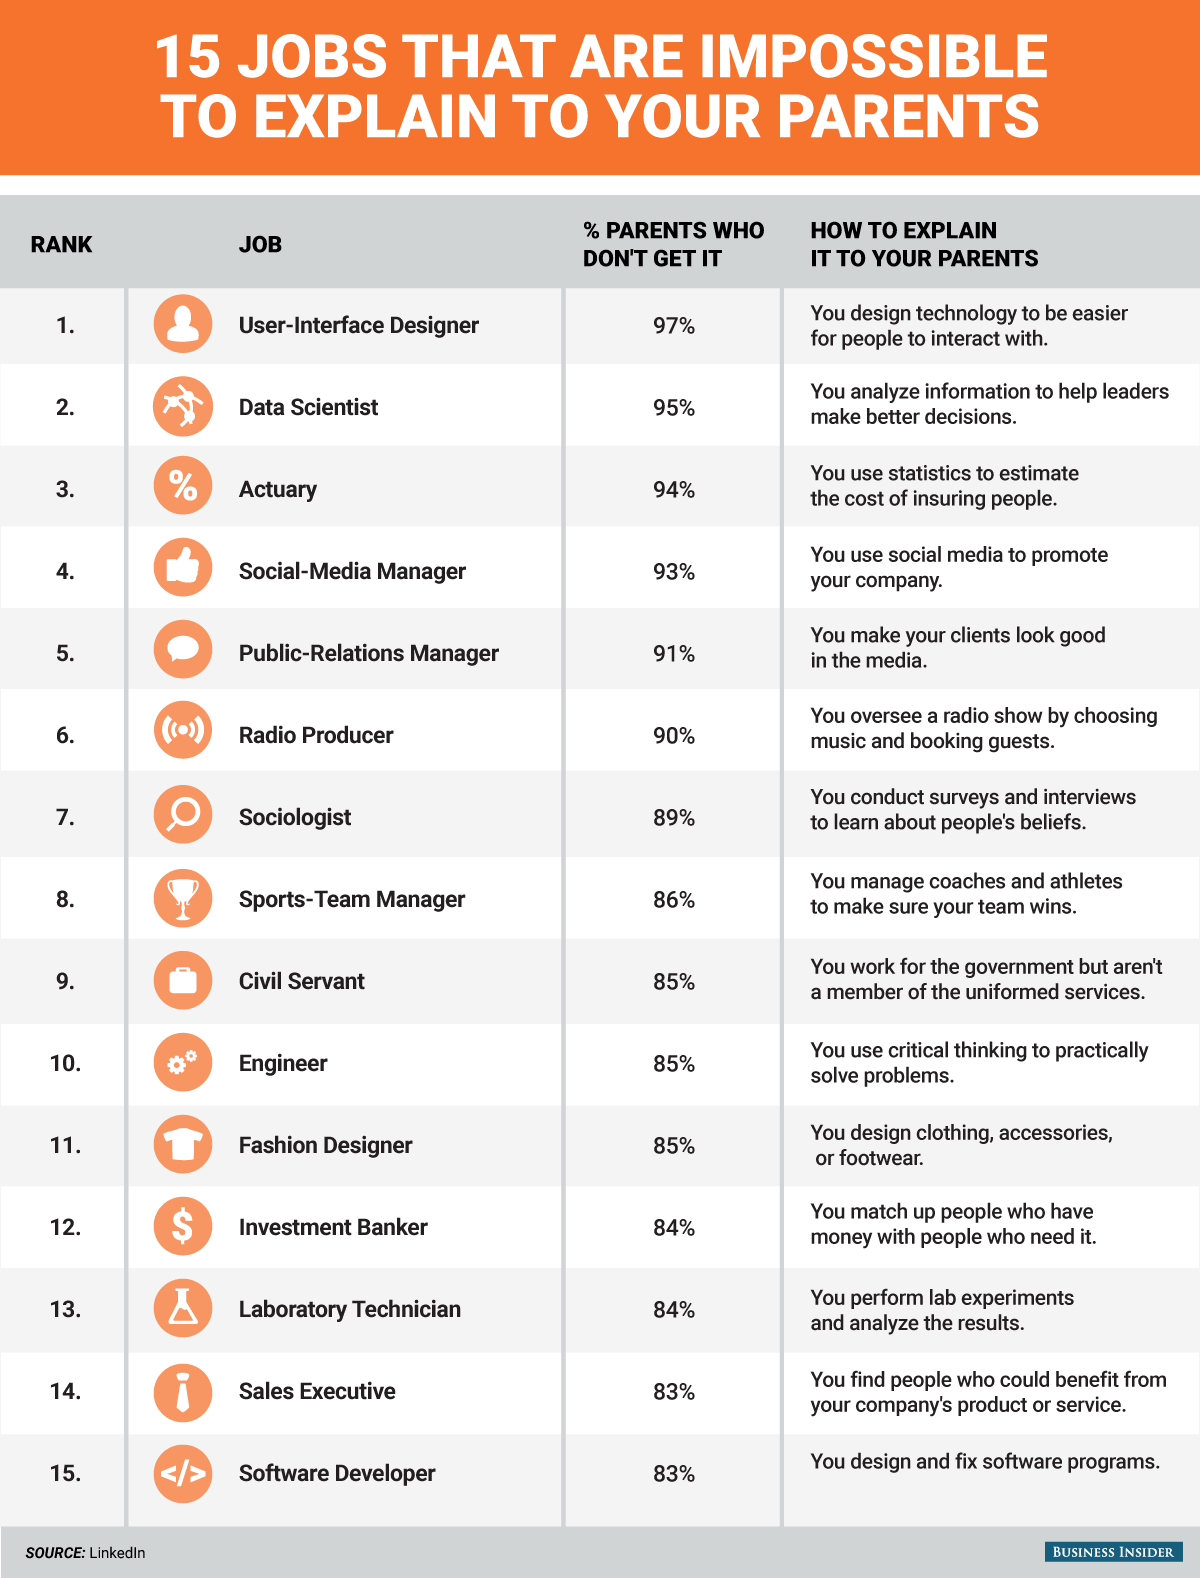 The 15 most misunderstood job titles and what they REALLY